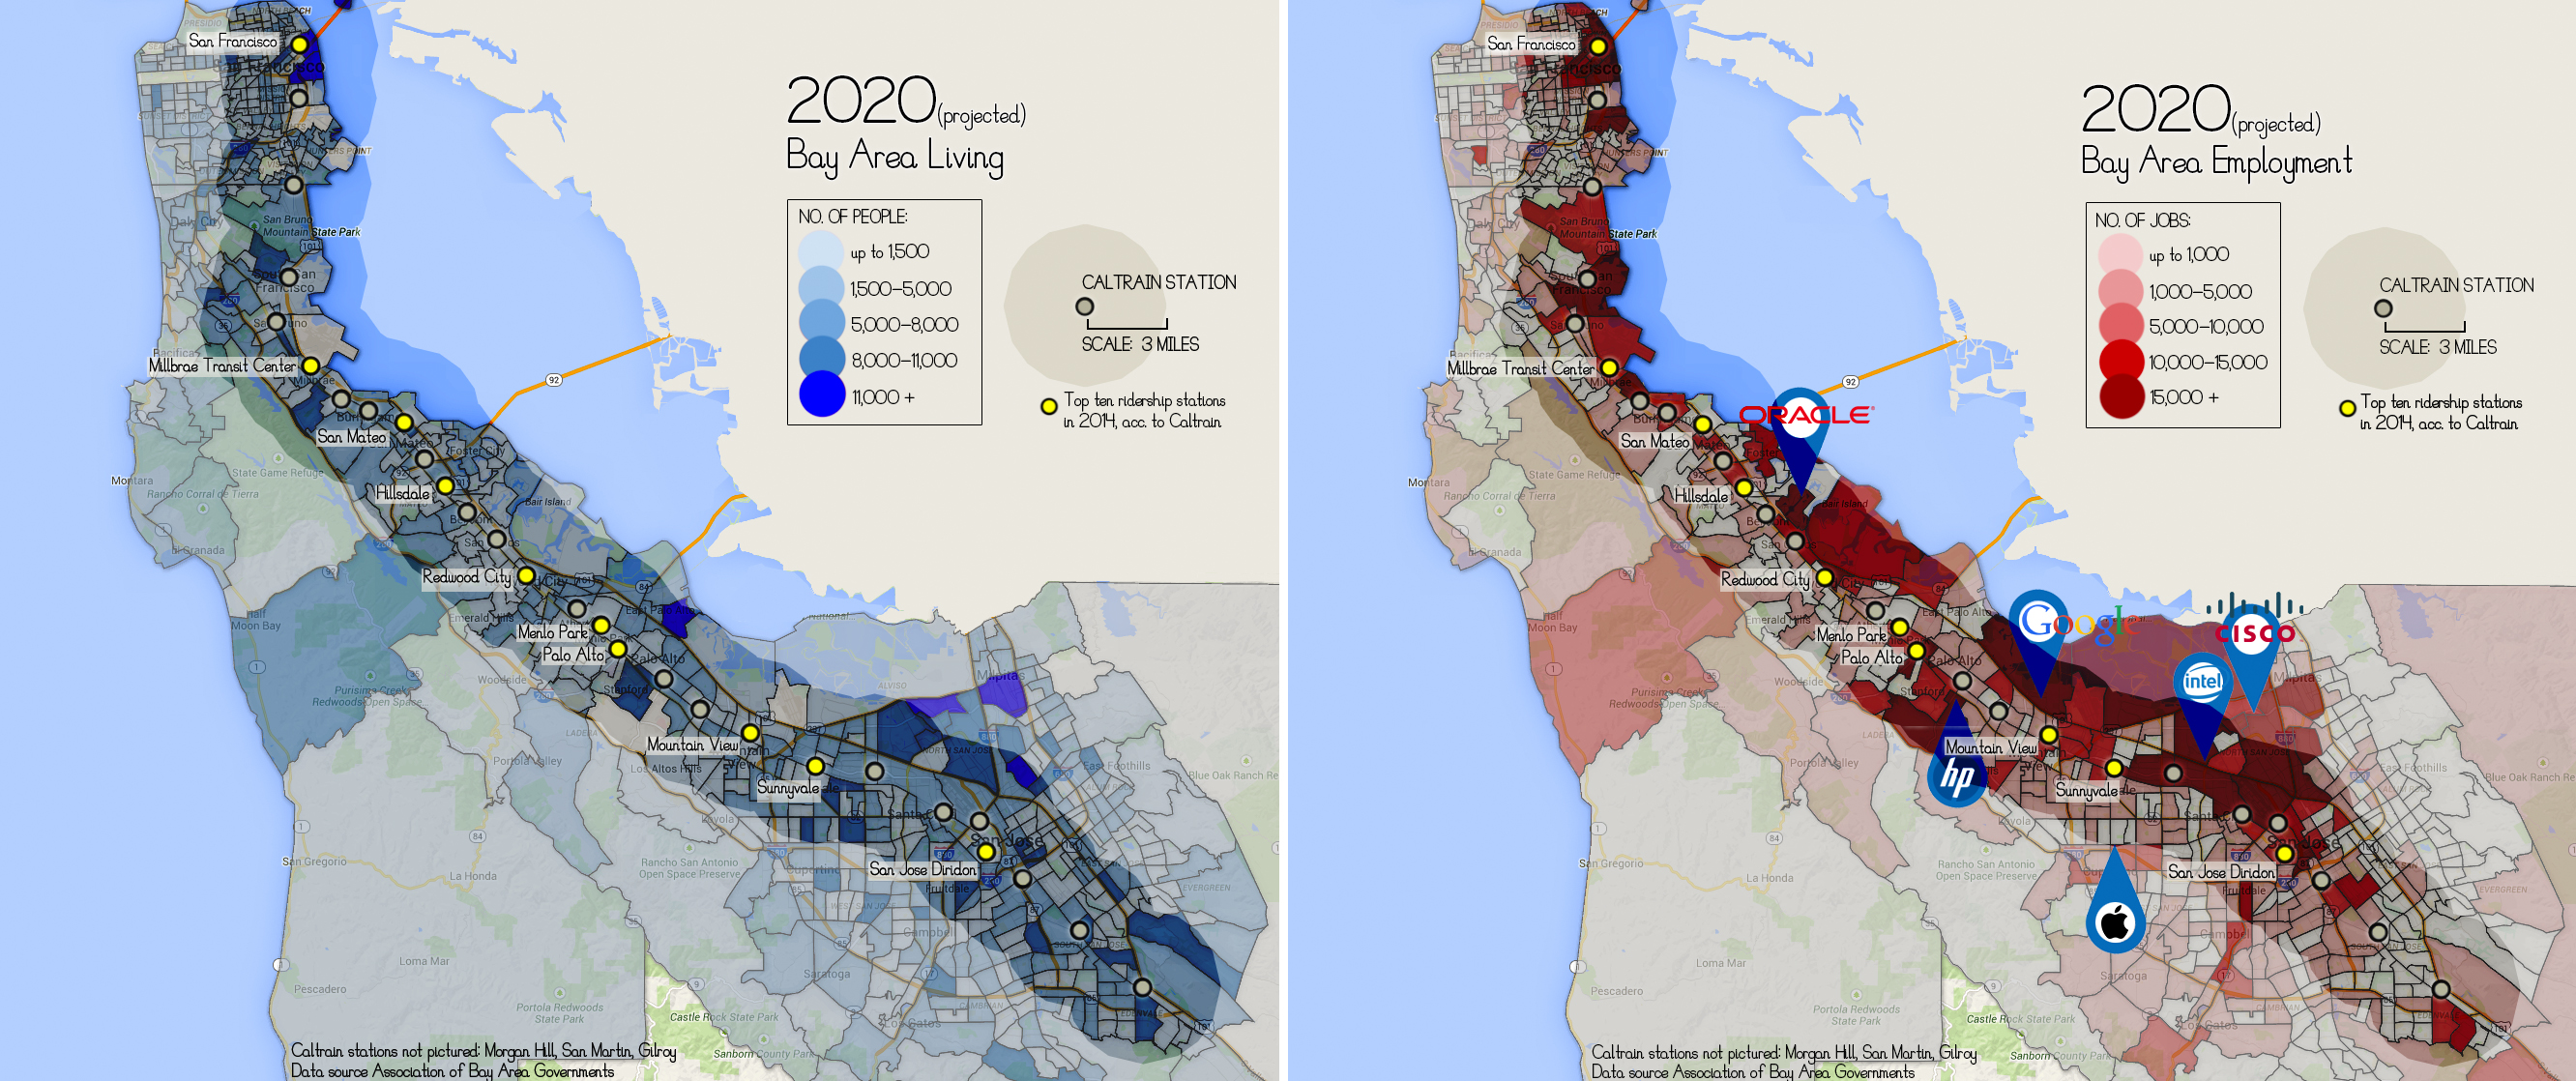 Data from the Association of Bay Area Governments shows the proximity of projected living and employment locations to Caltrain stations in 2020.